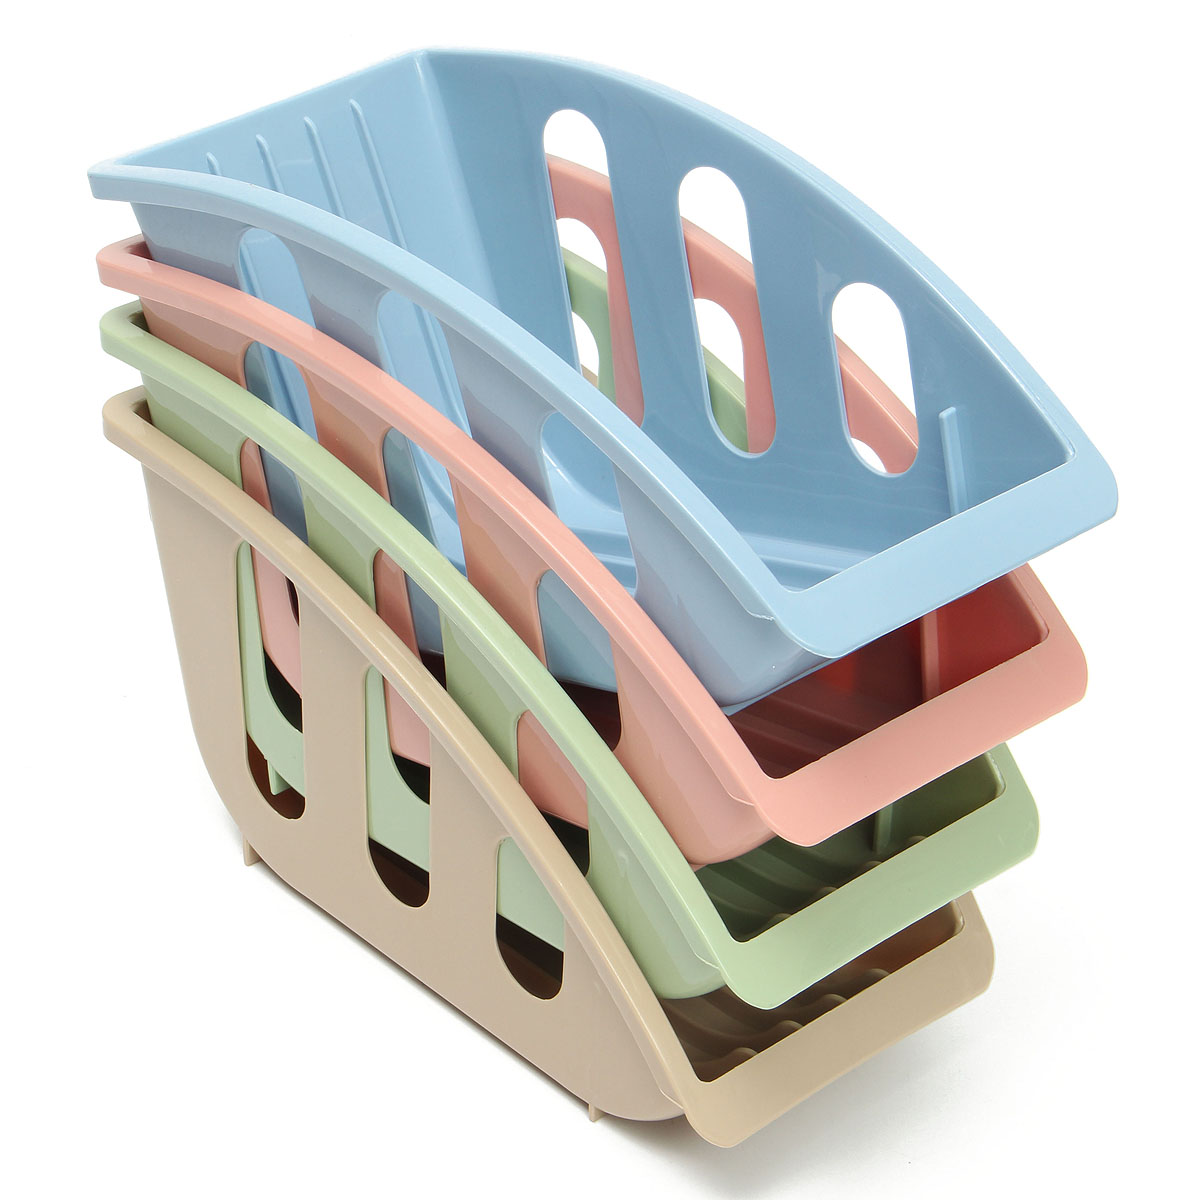 Dishes Bowls Strainer Drying Rack Holder Kitchen Cutlery Storage ...